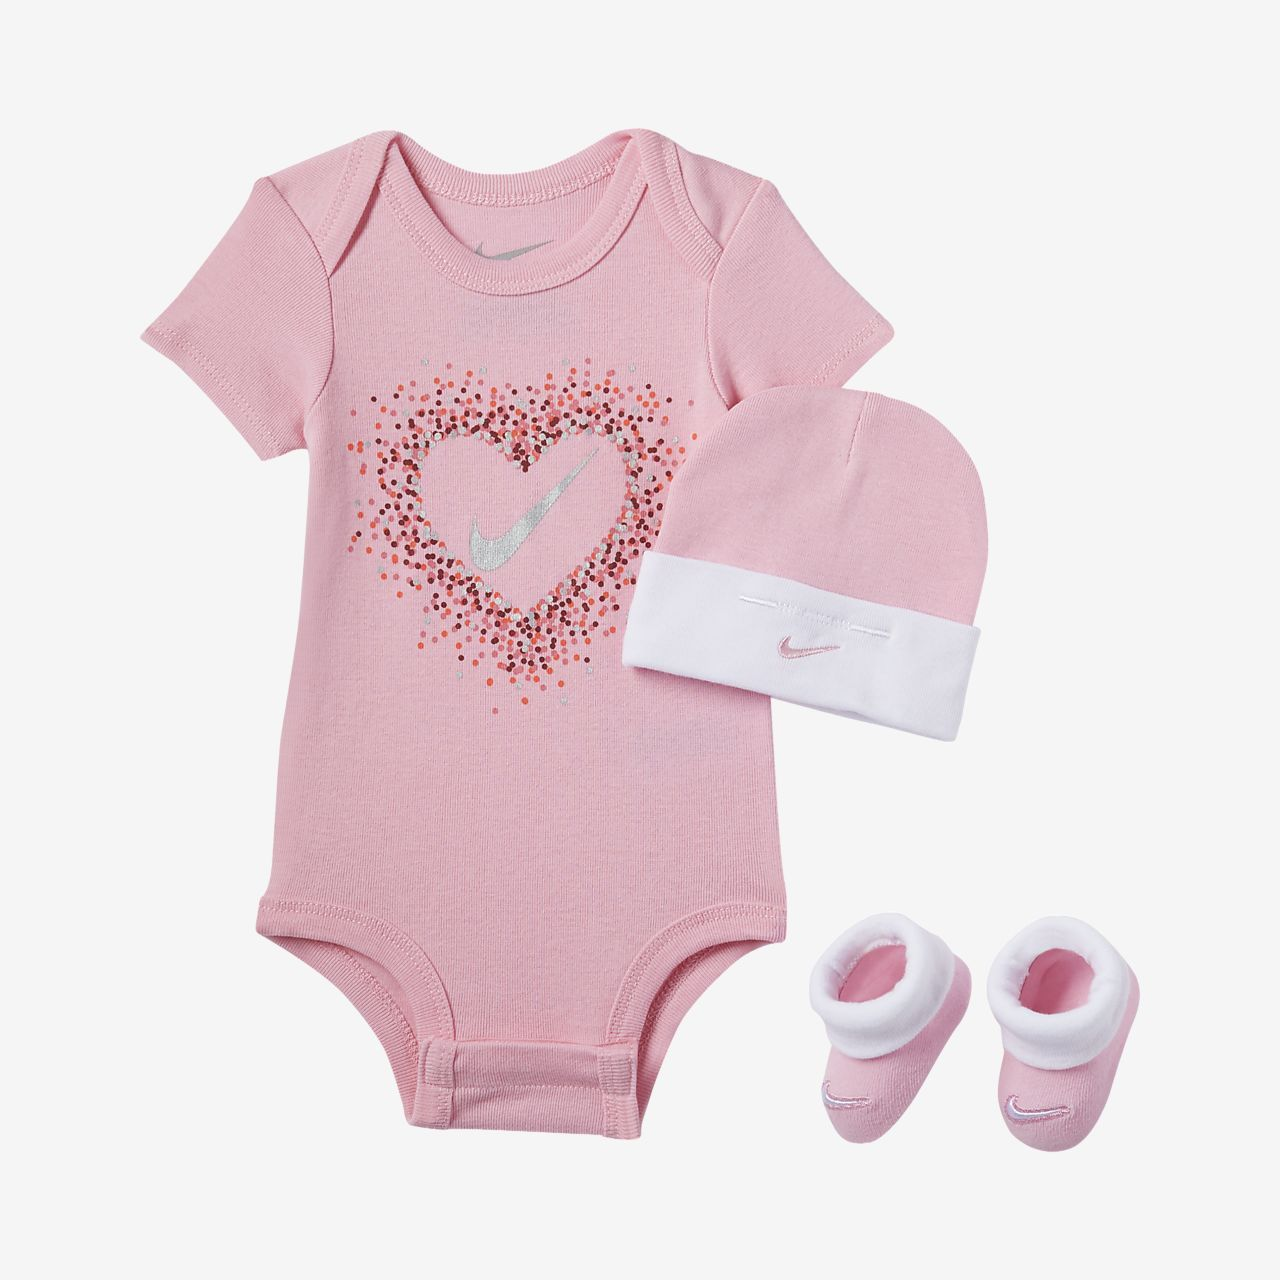 Nike Glitter Hearts Infant Toddler 3-Piece Set  a1a395bc9